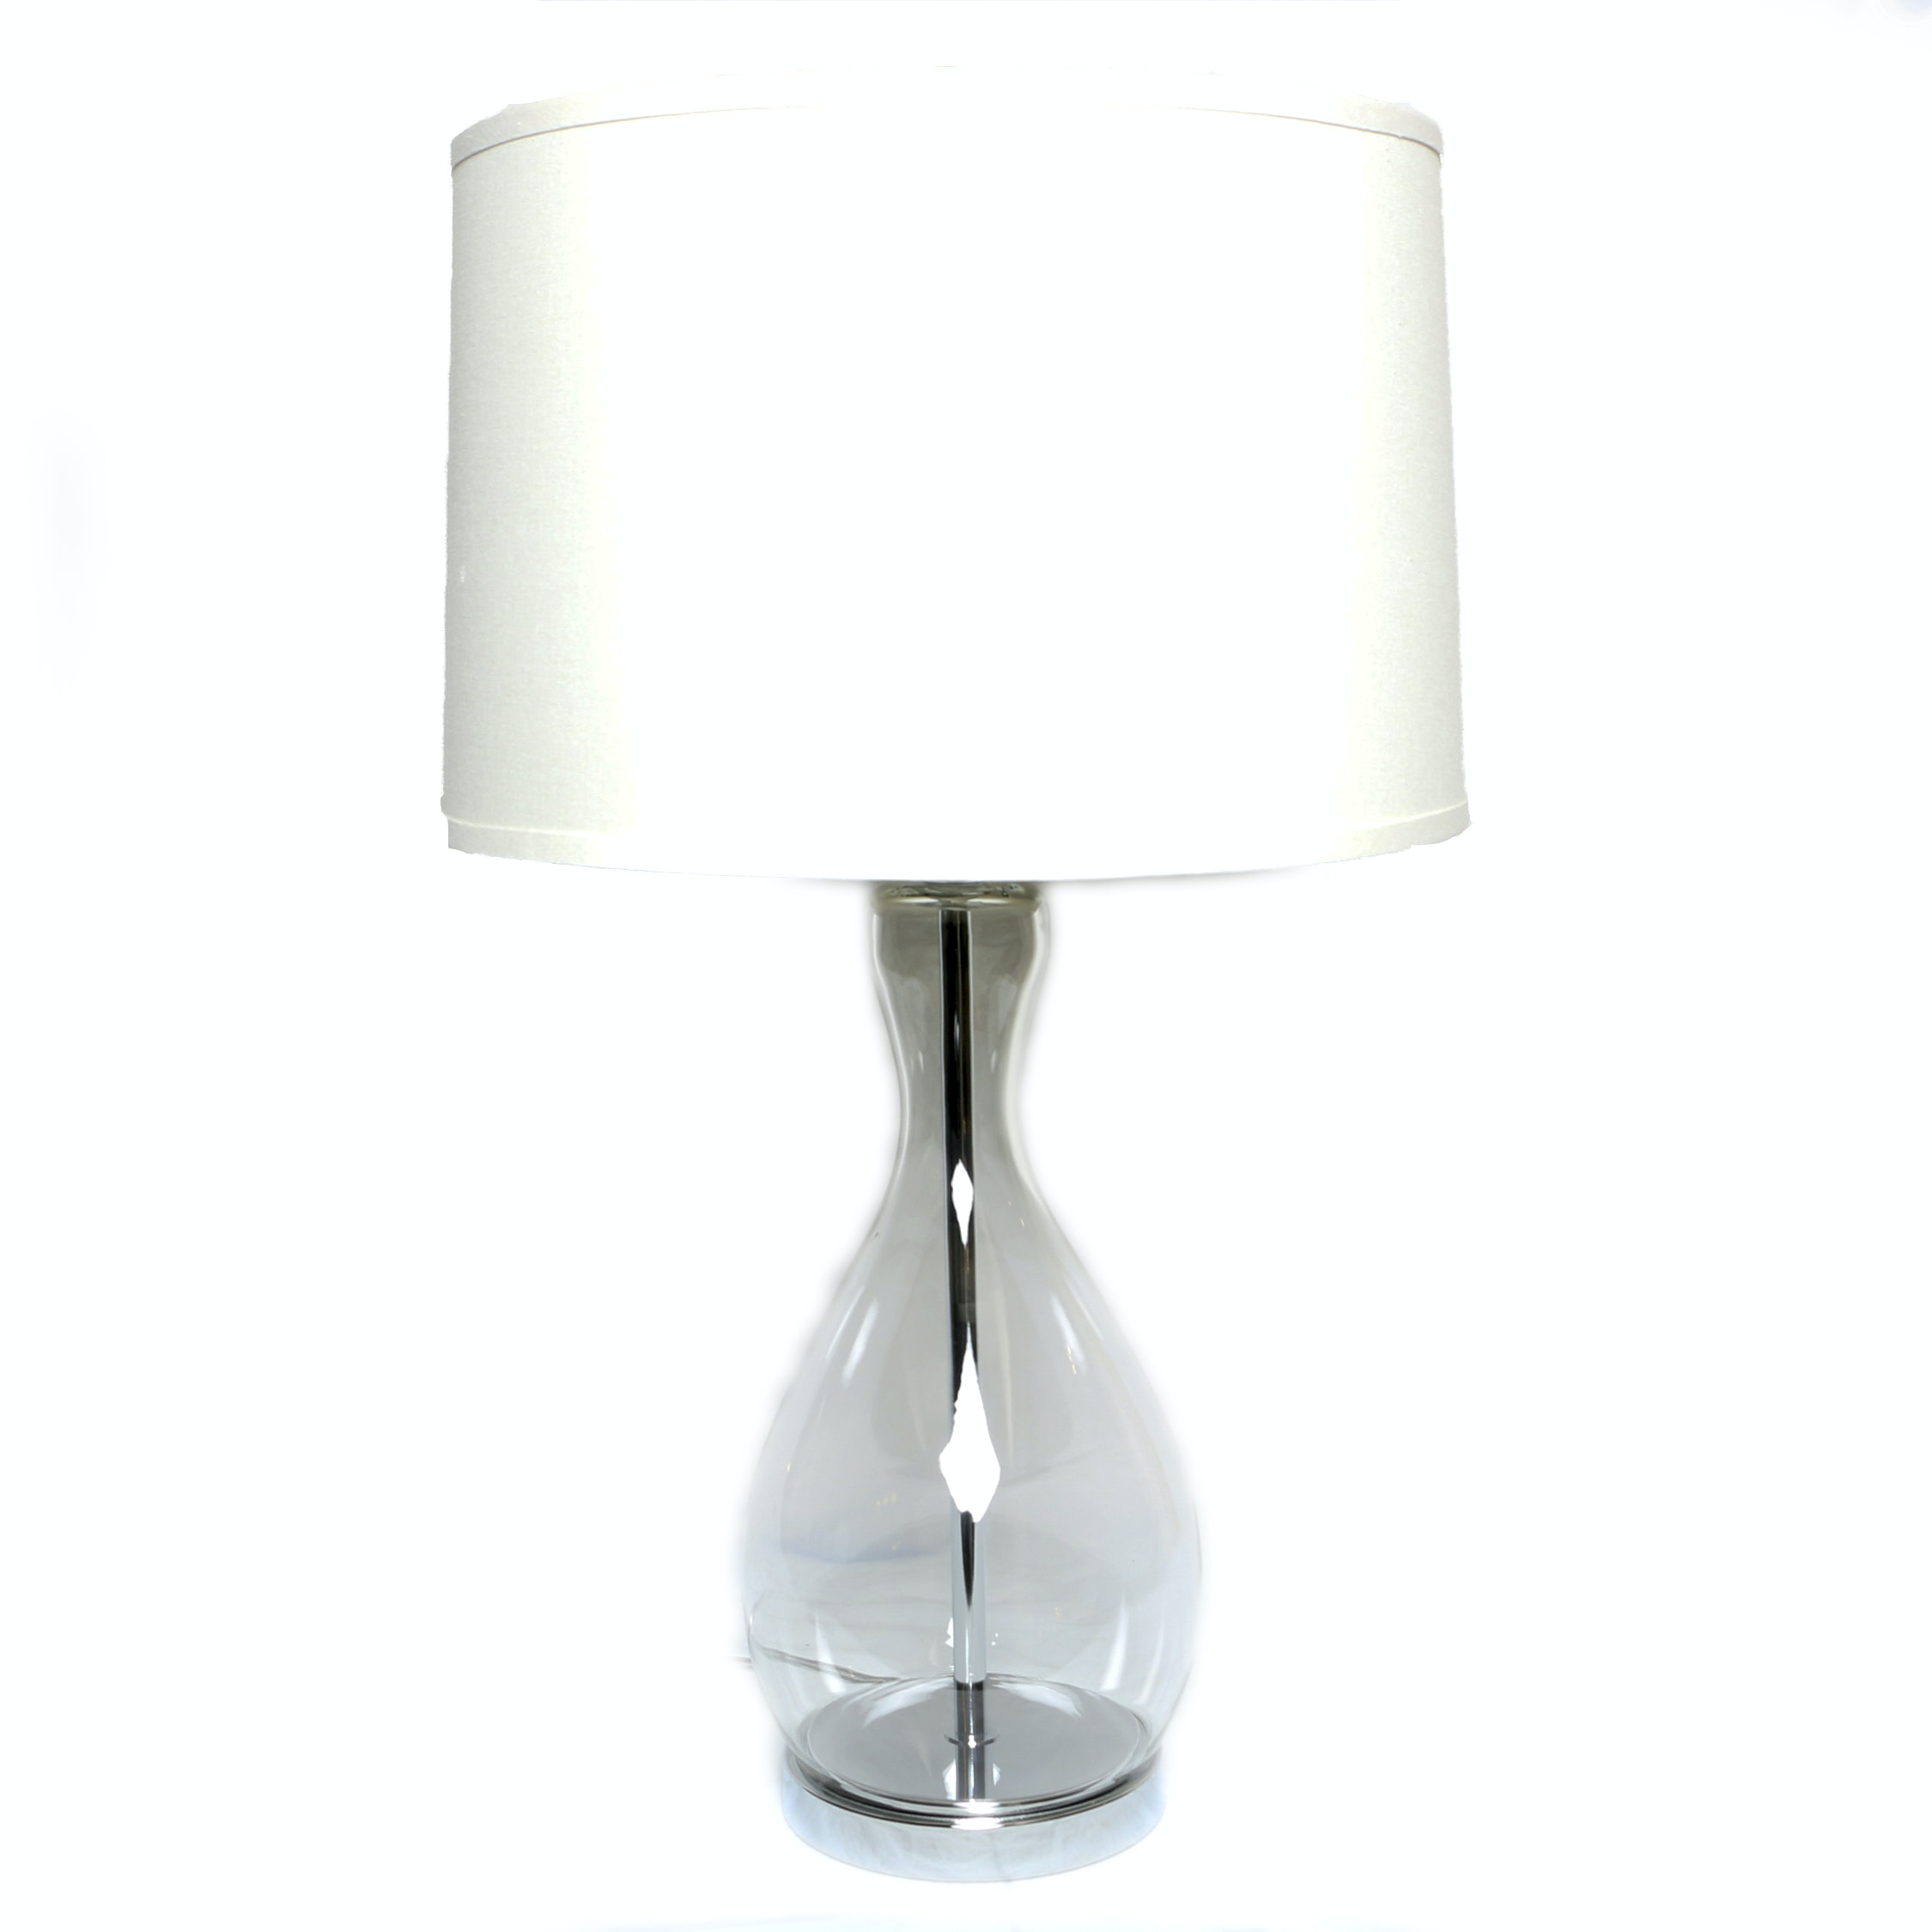 Modern Glass Table Lamp with Drum Shade